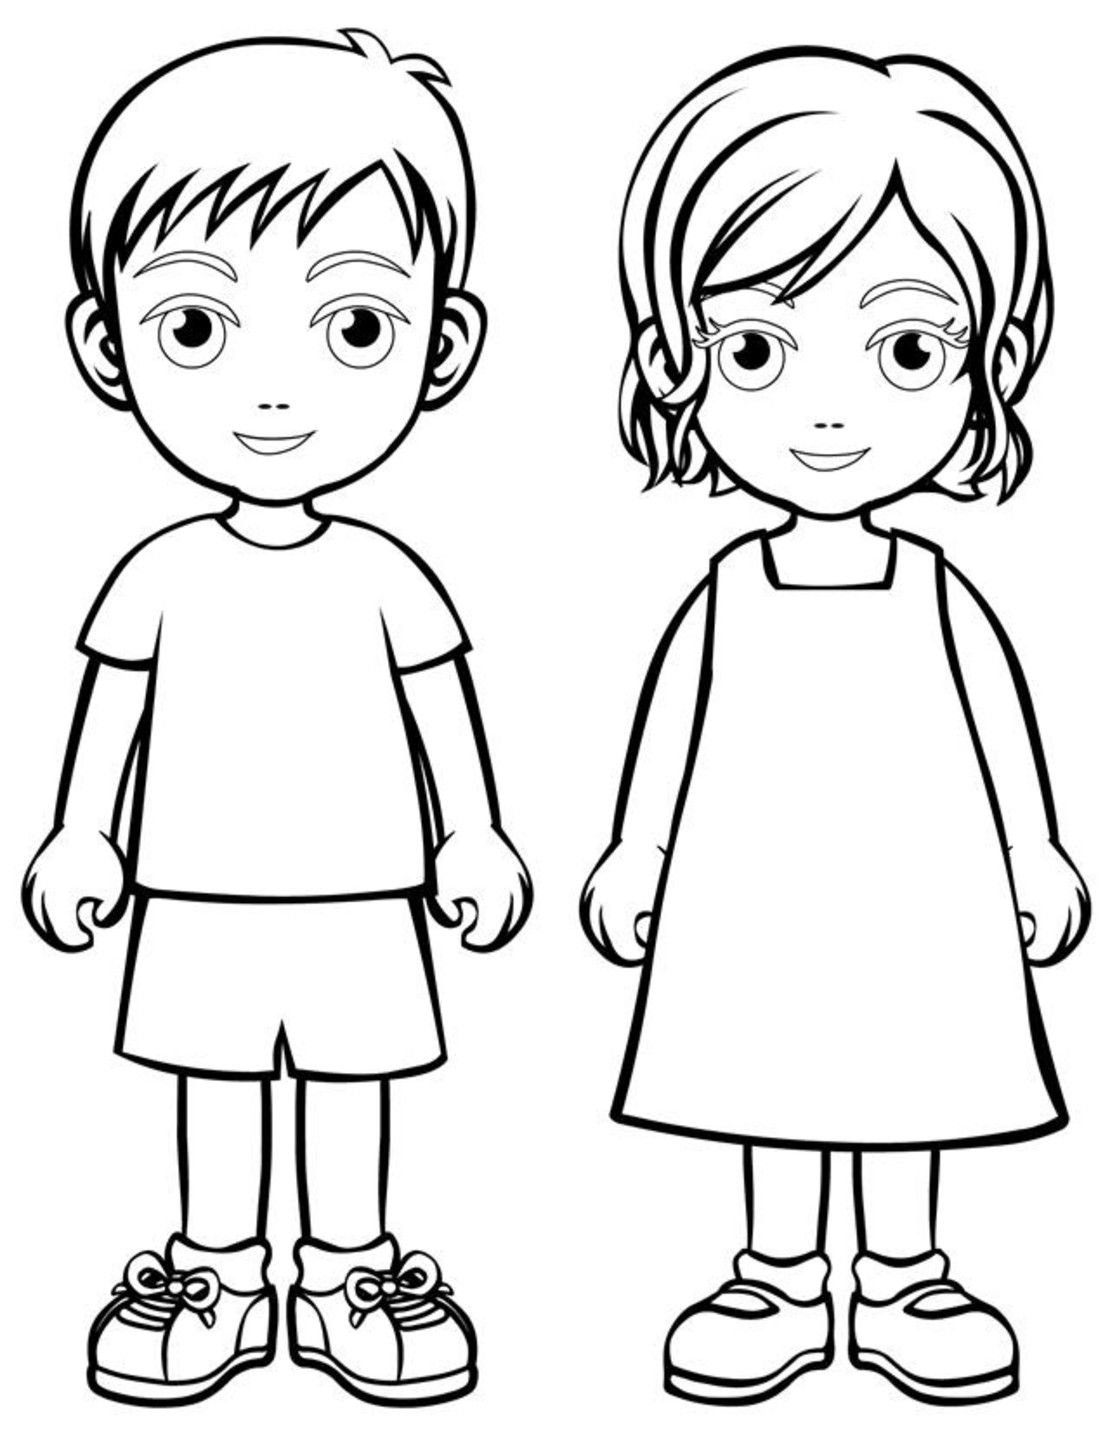 People And Places Coloring Pages Boy And Girl Peuter Thema Kinderactiviteiten Kleurboek